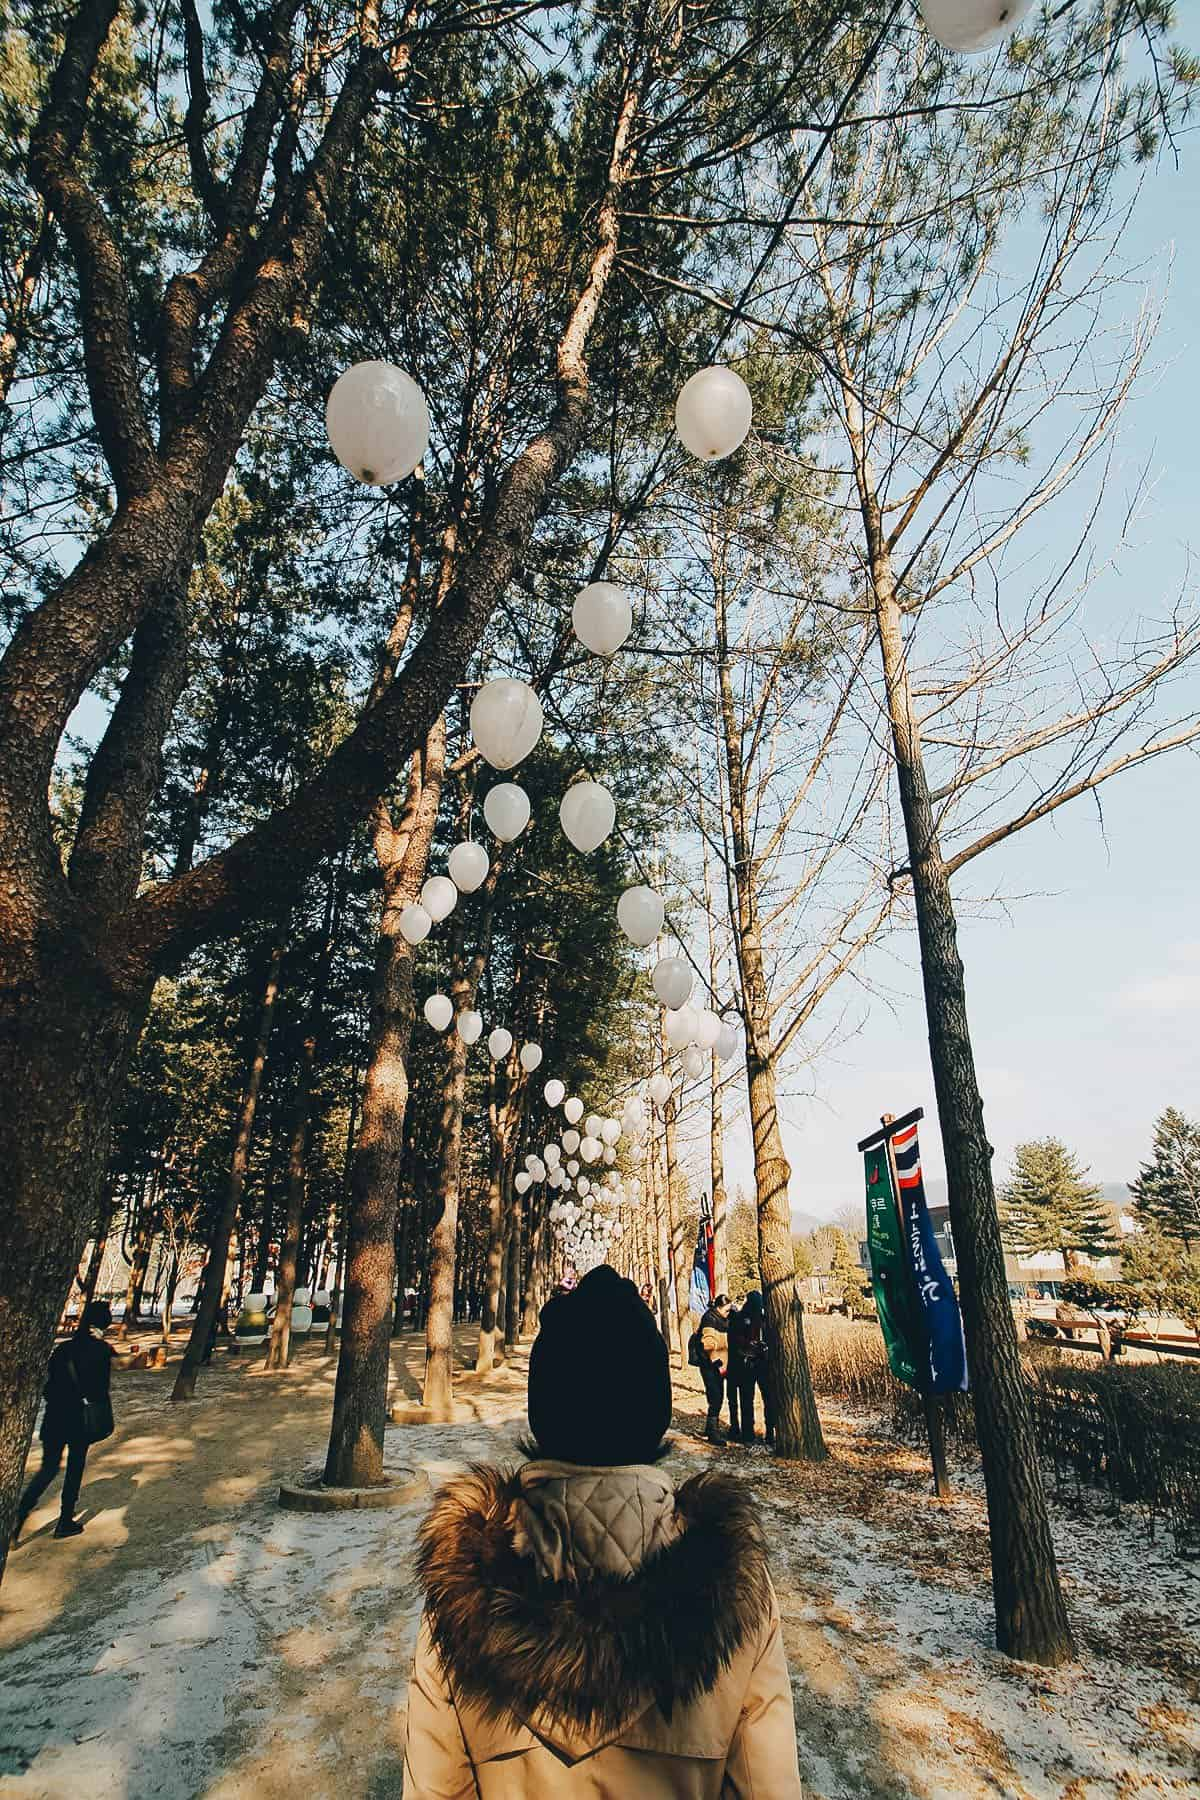 Nami Island, Chuncheon, South Korea